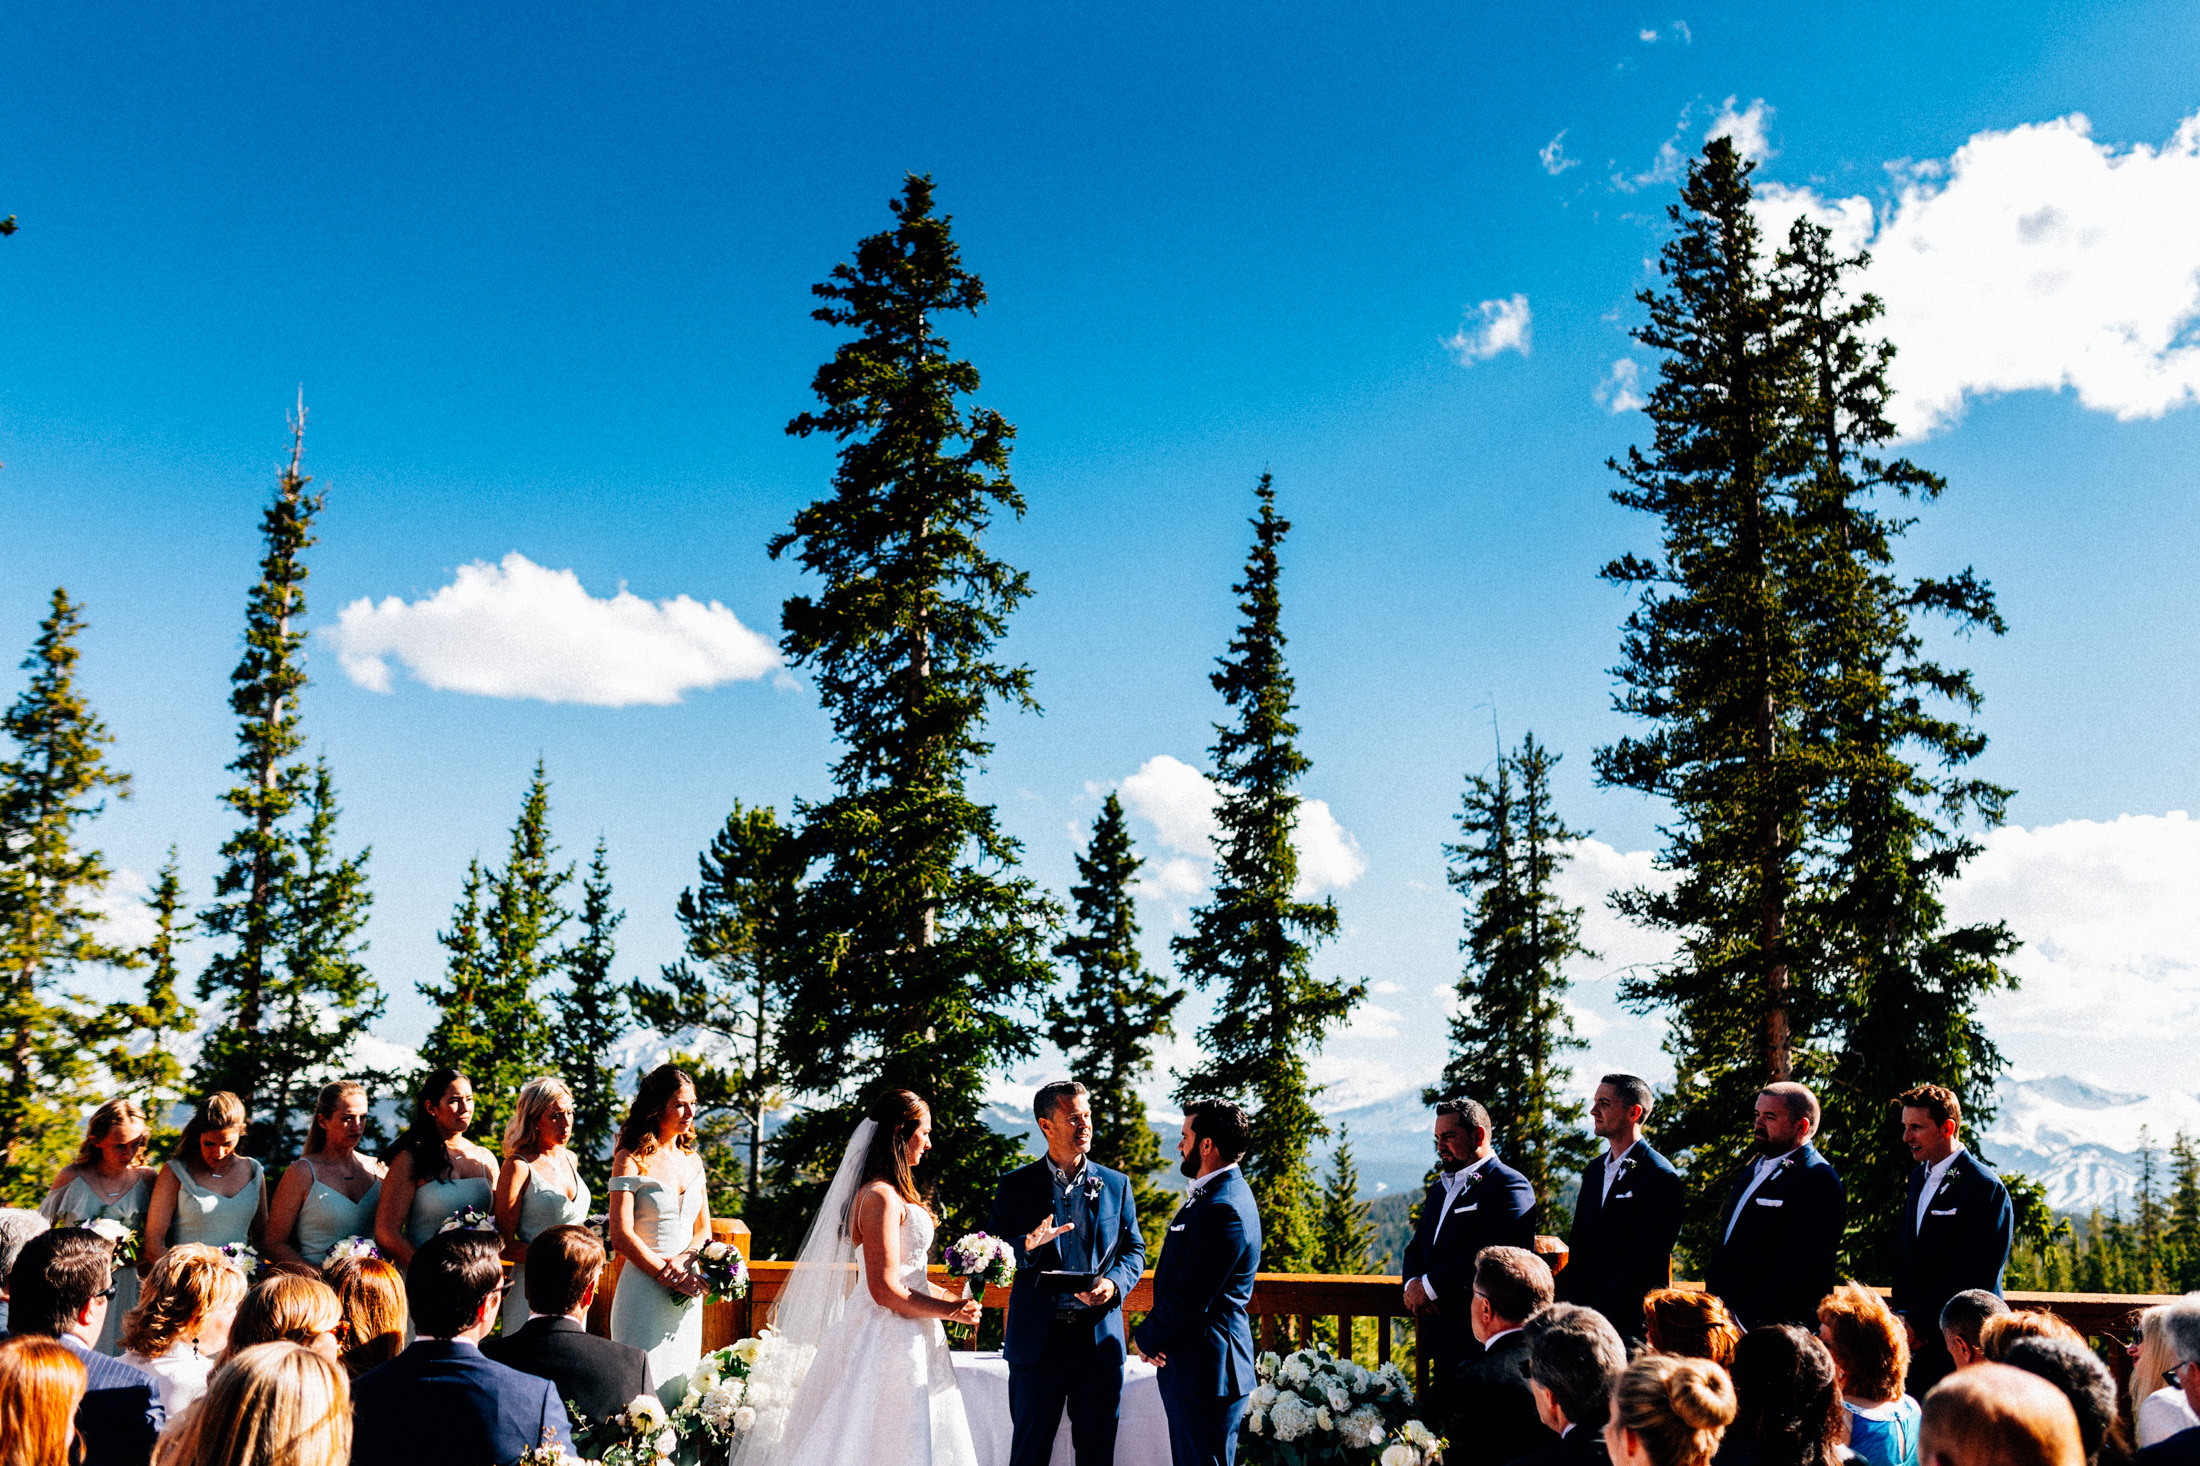 Bride and groom with wedding party stand at altar on the deck of Timber Ridge Lodge with pine trees and blue sky.